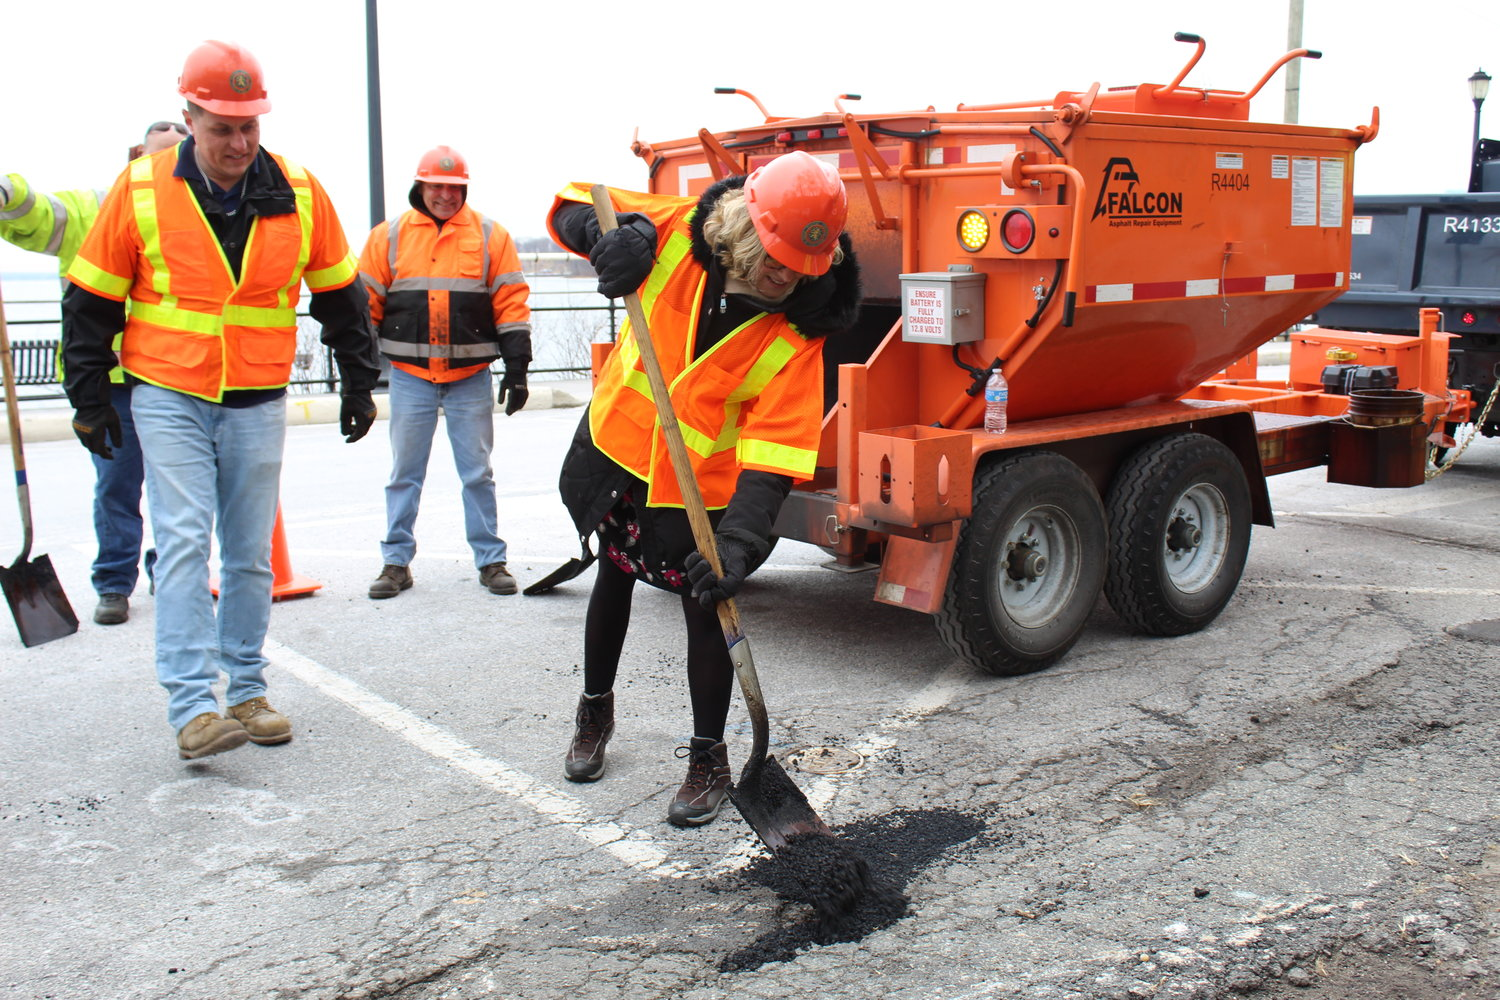 Nassau County Executive Laura Curran helped memberrs of the public works staff fill potholes in a parking lot on The Boulevard in Sea Cliff on Jan. 23.